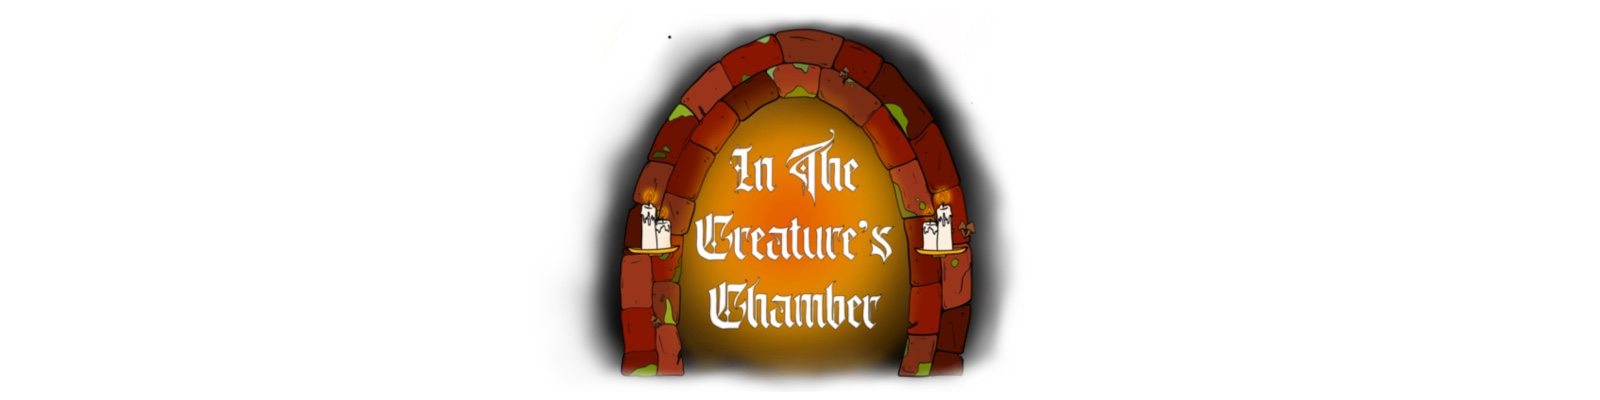 In The Creatures Chamber